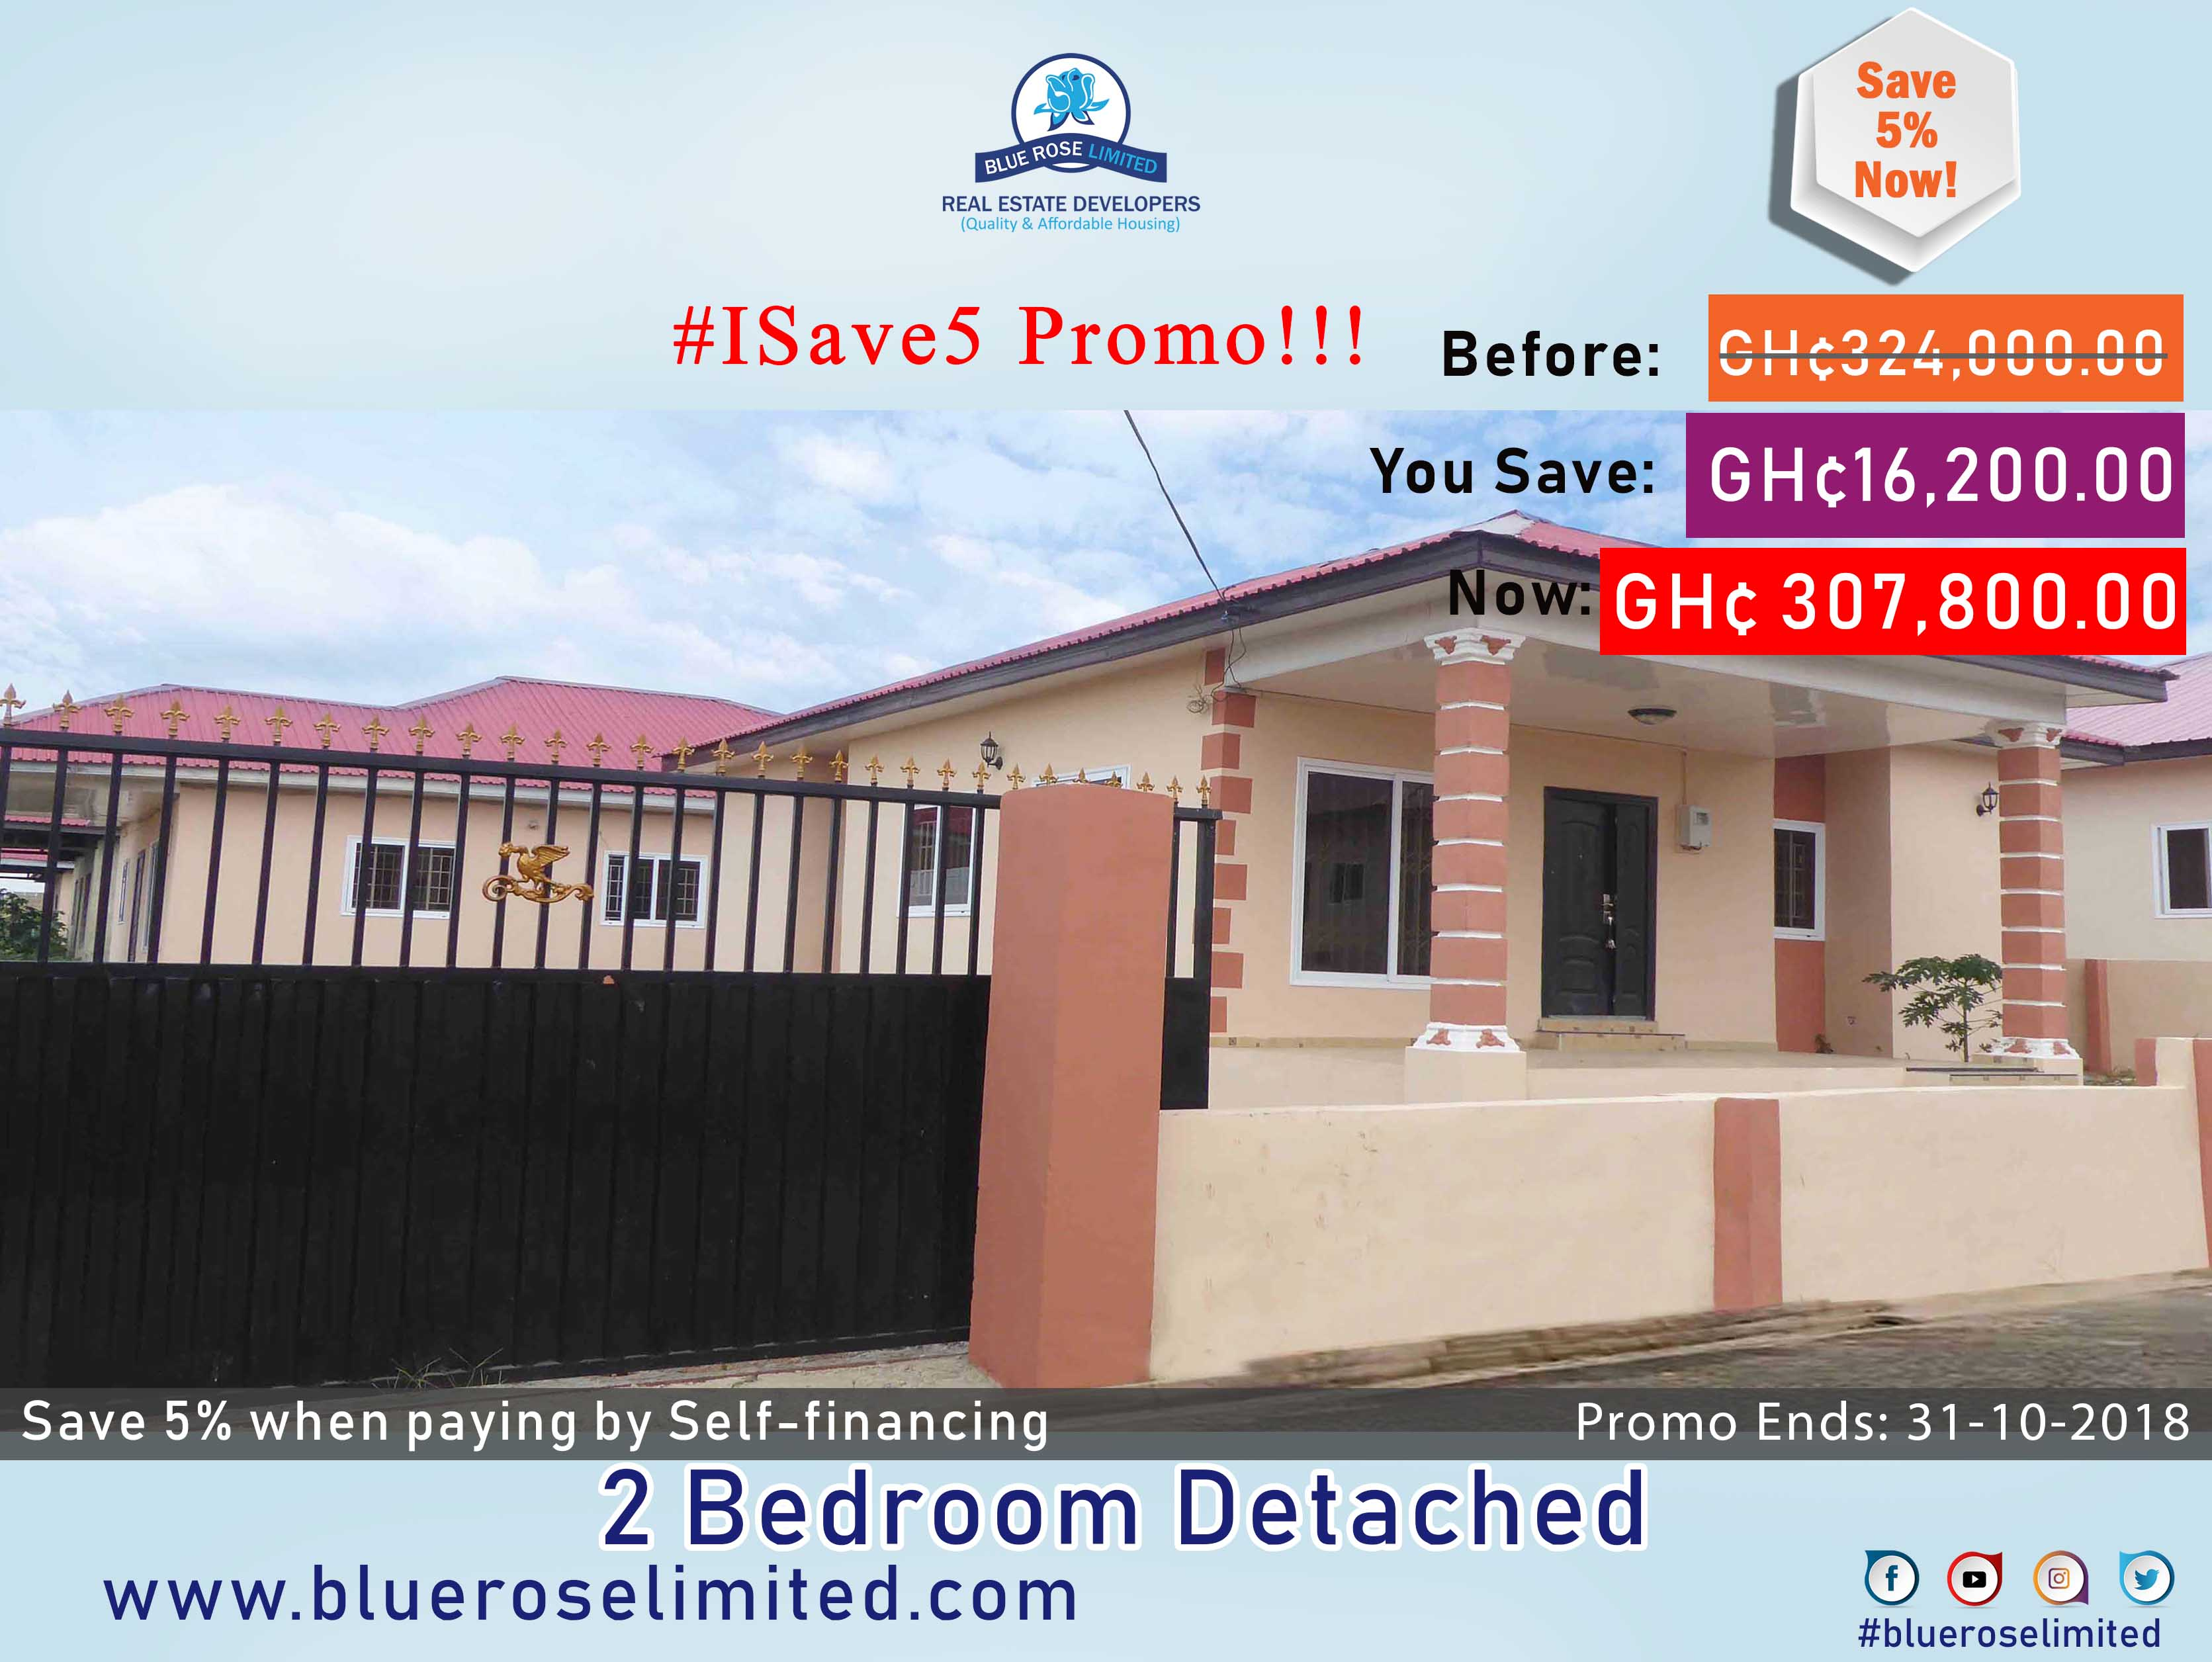 2 Bedroom Detached